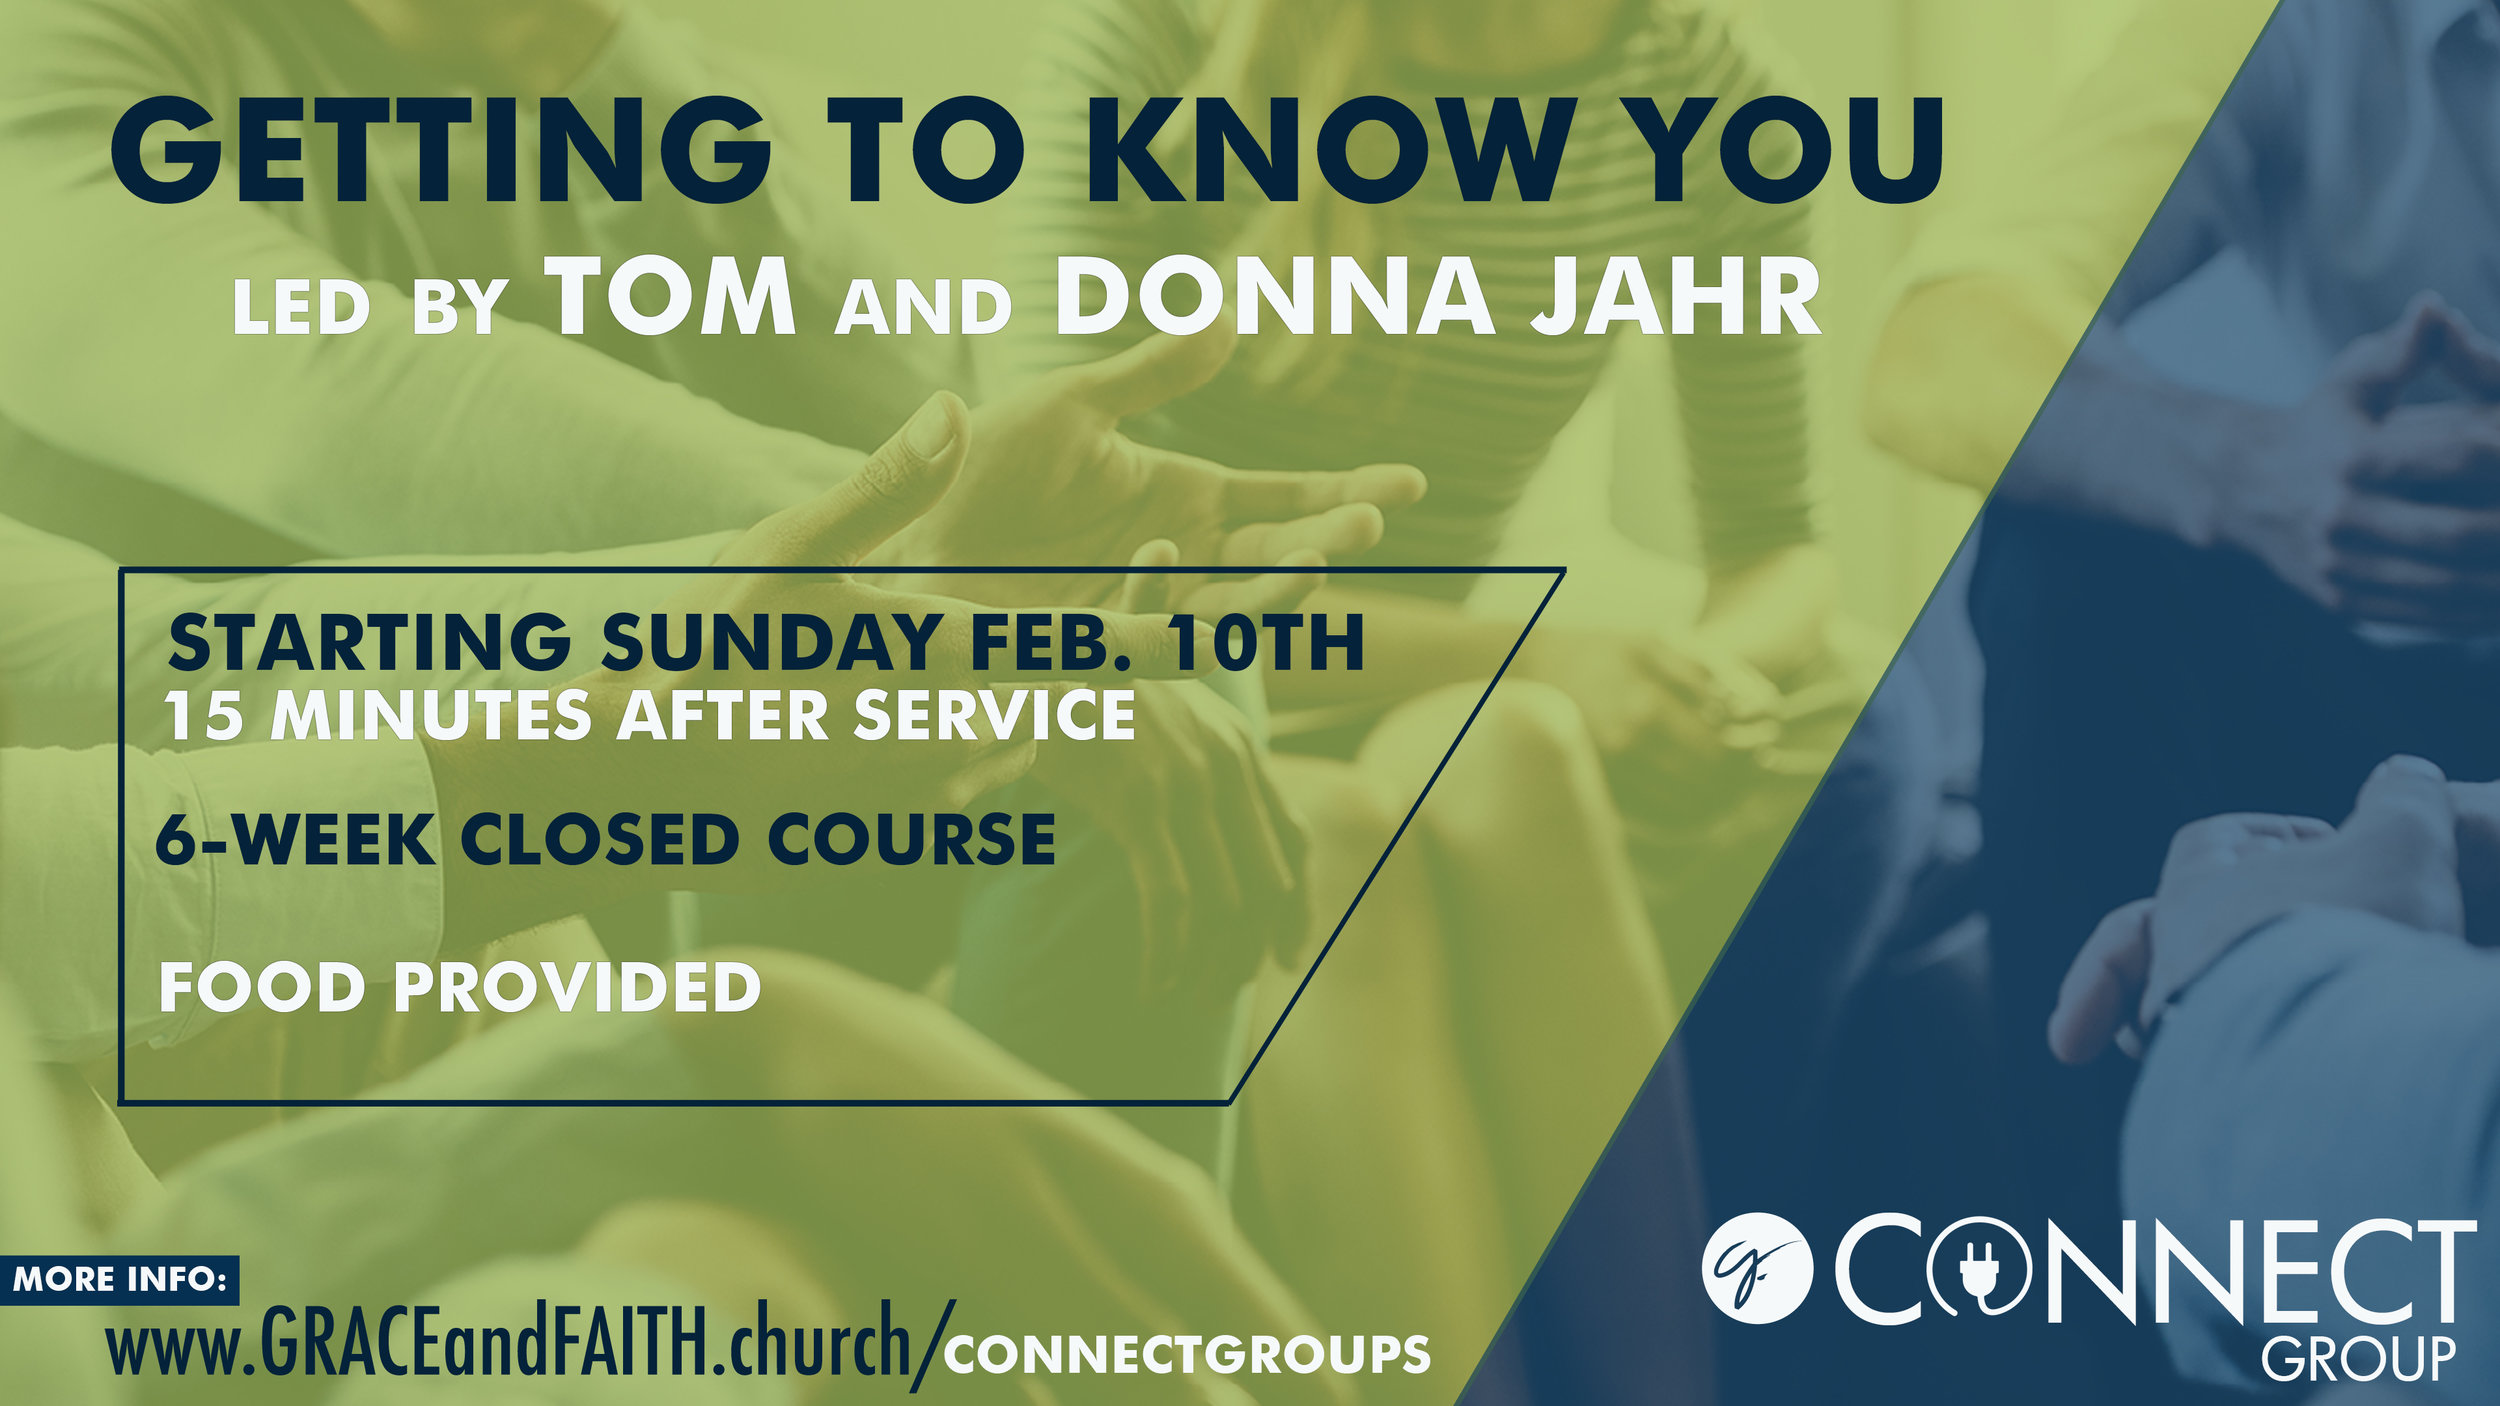 Getting to Know You Led by Tom and Donna Jahr 4K.jpg